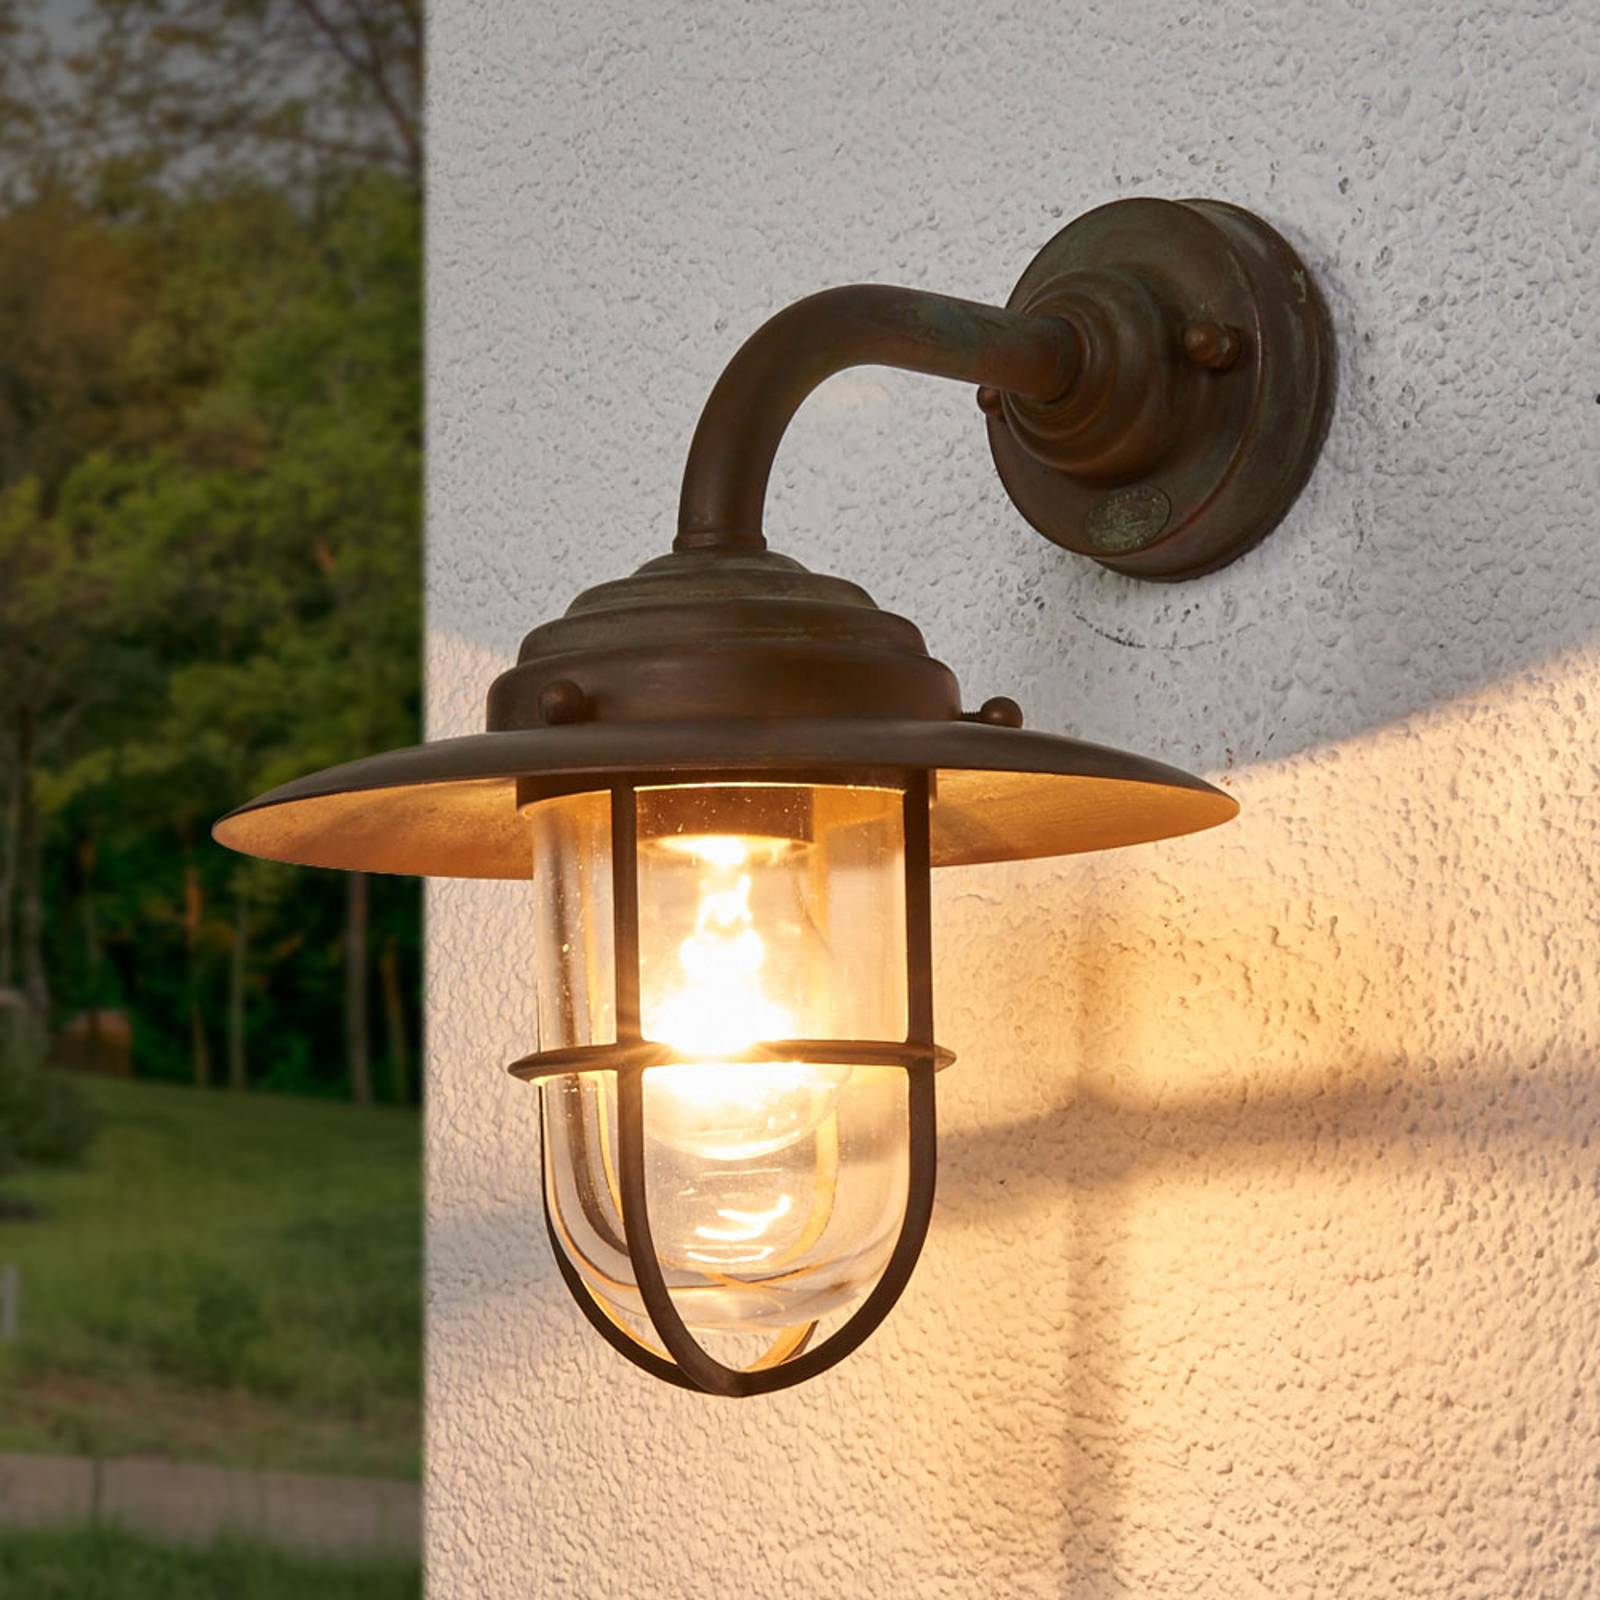 Stylish outdoor wall light Antique, clear glass from Moretti